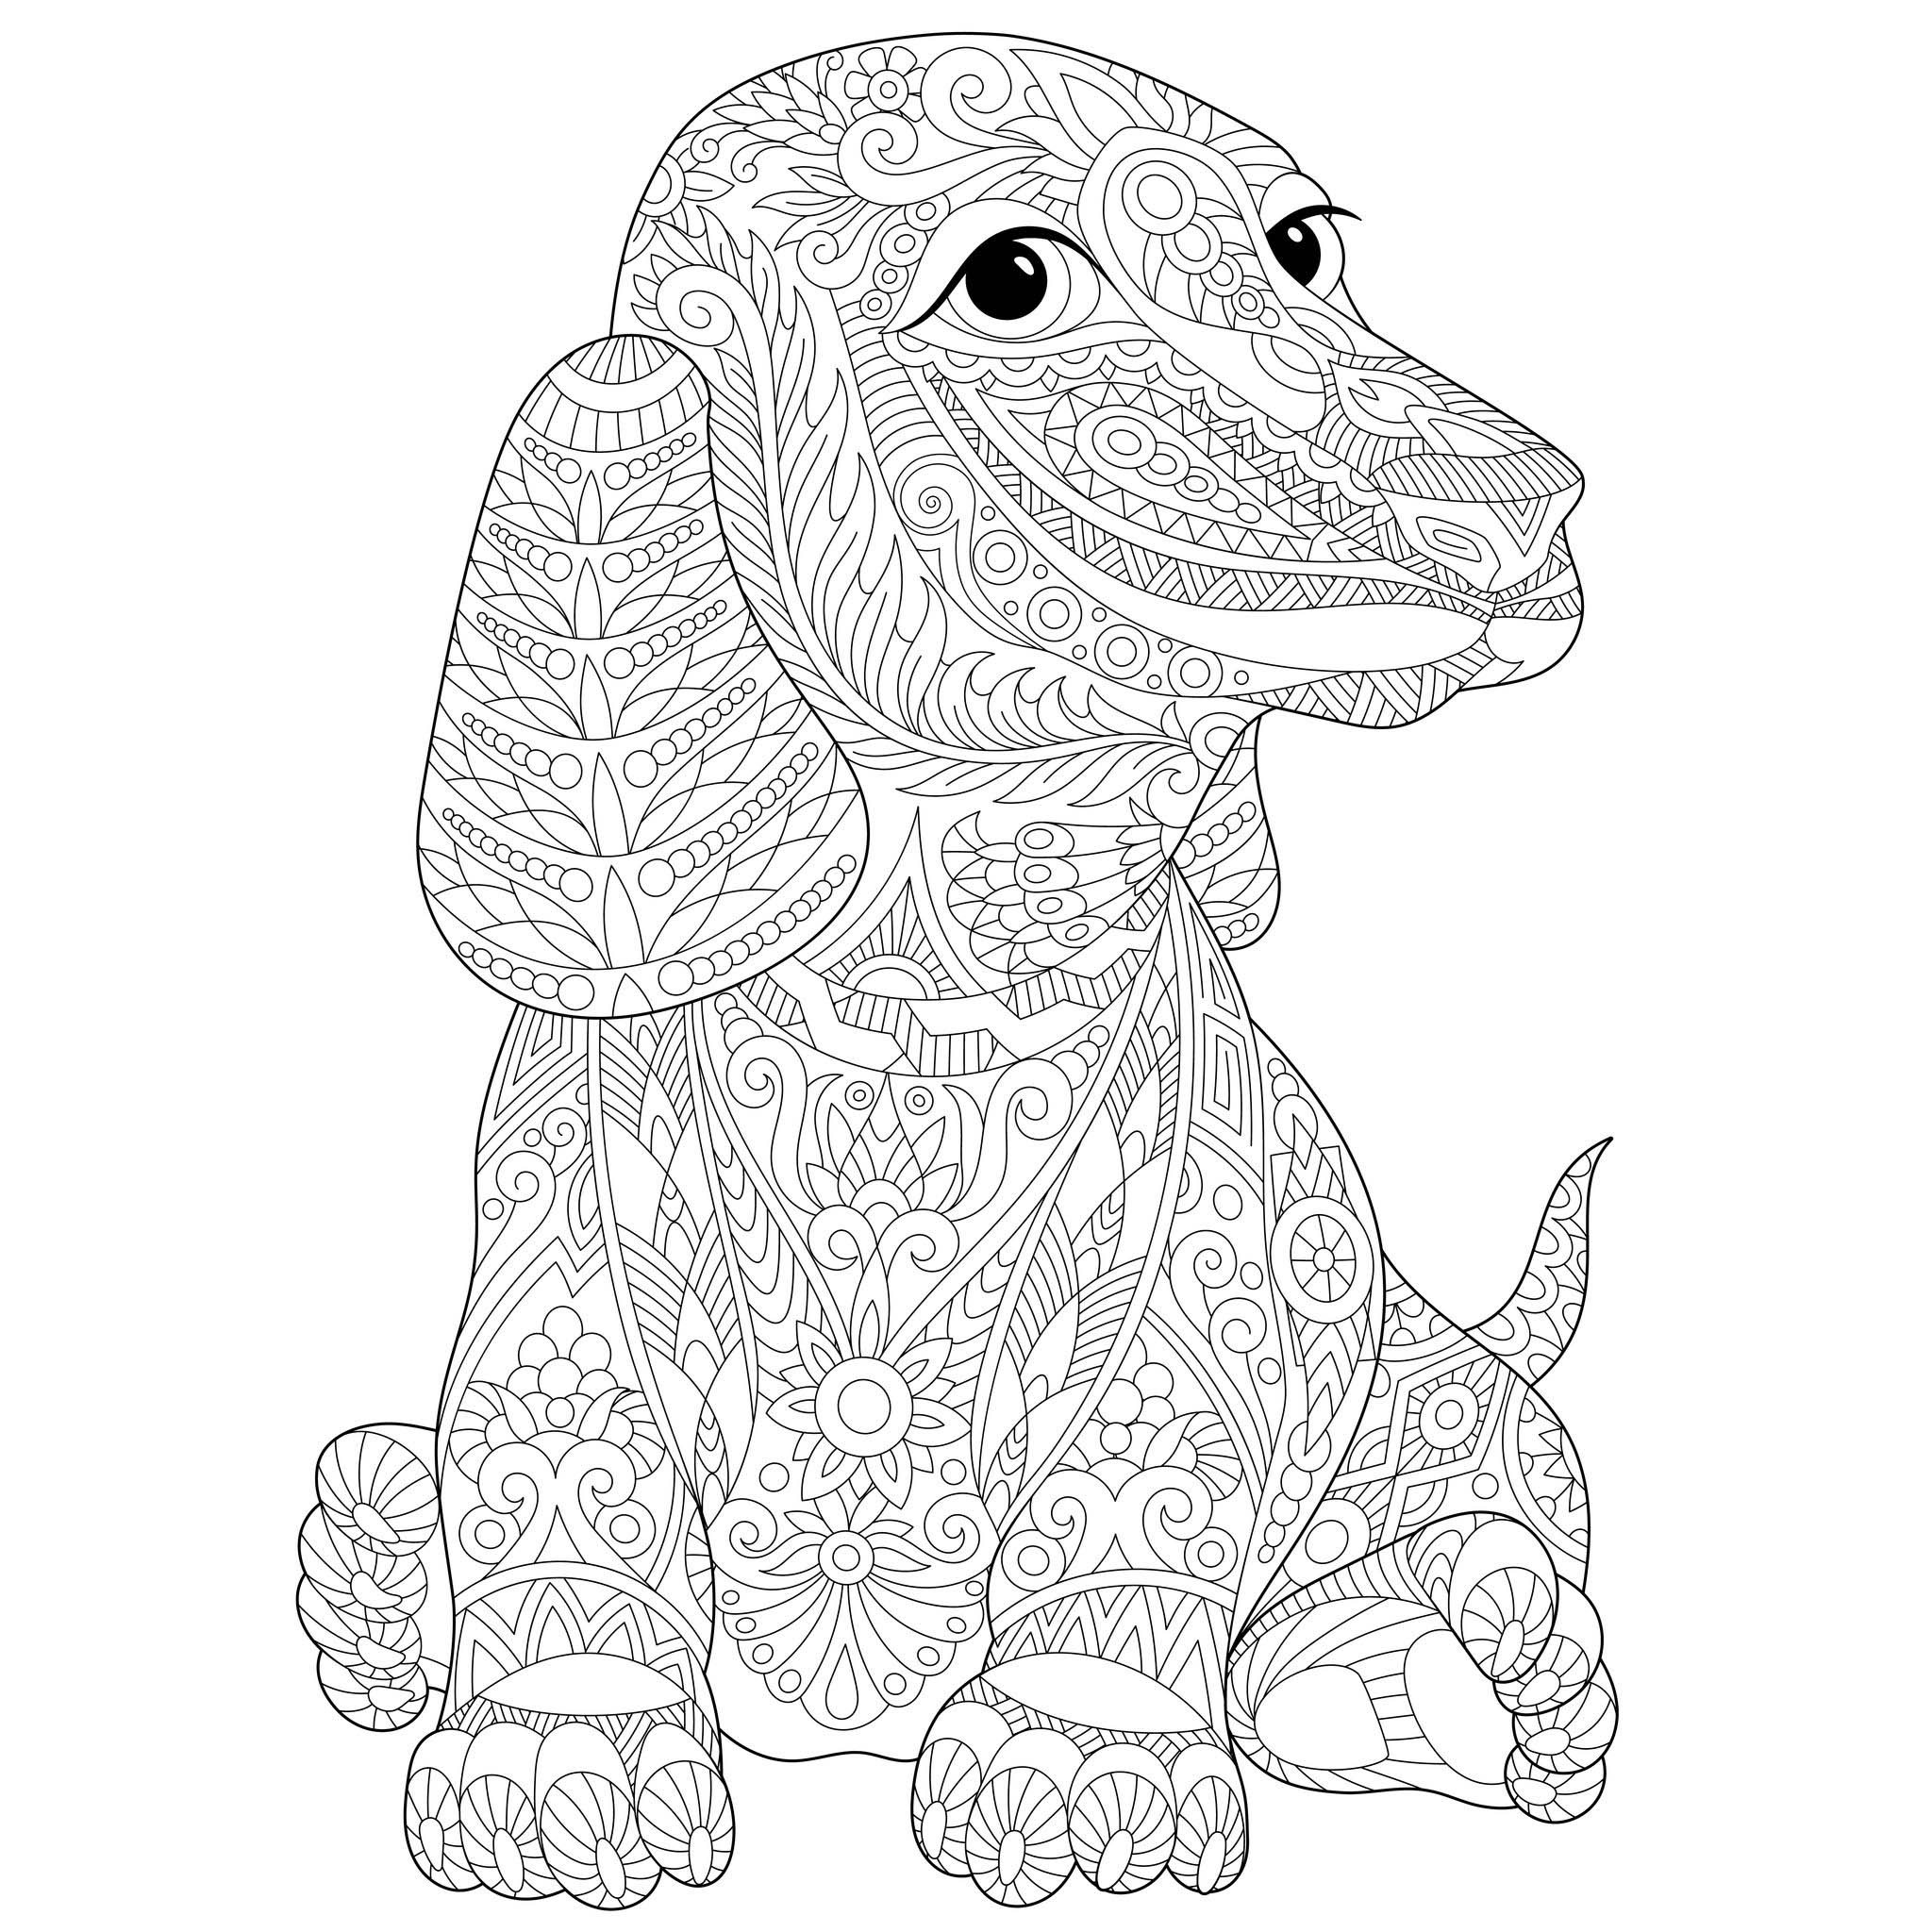 dog coloring picture dog breed coloring pages 2 coloring picture dog